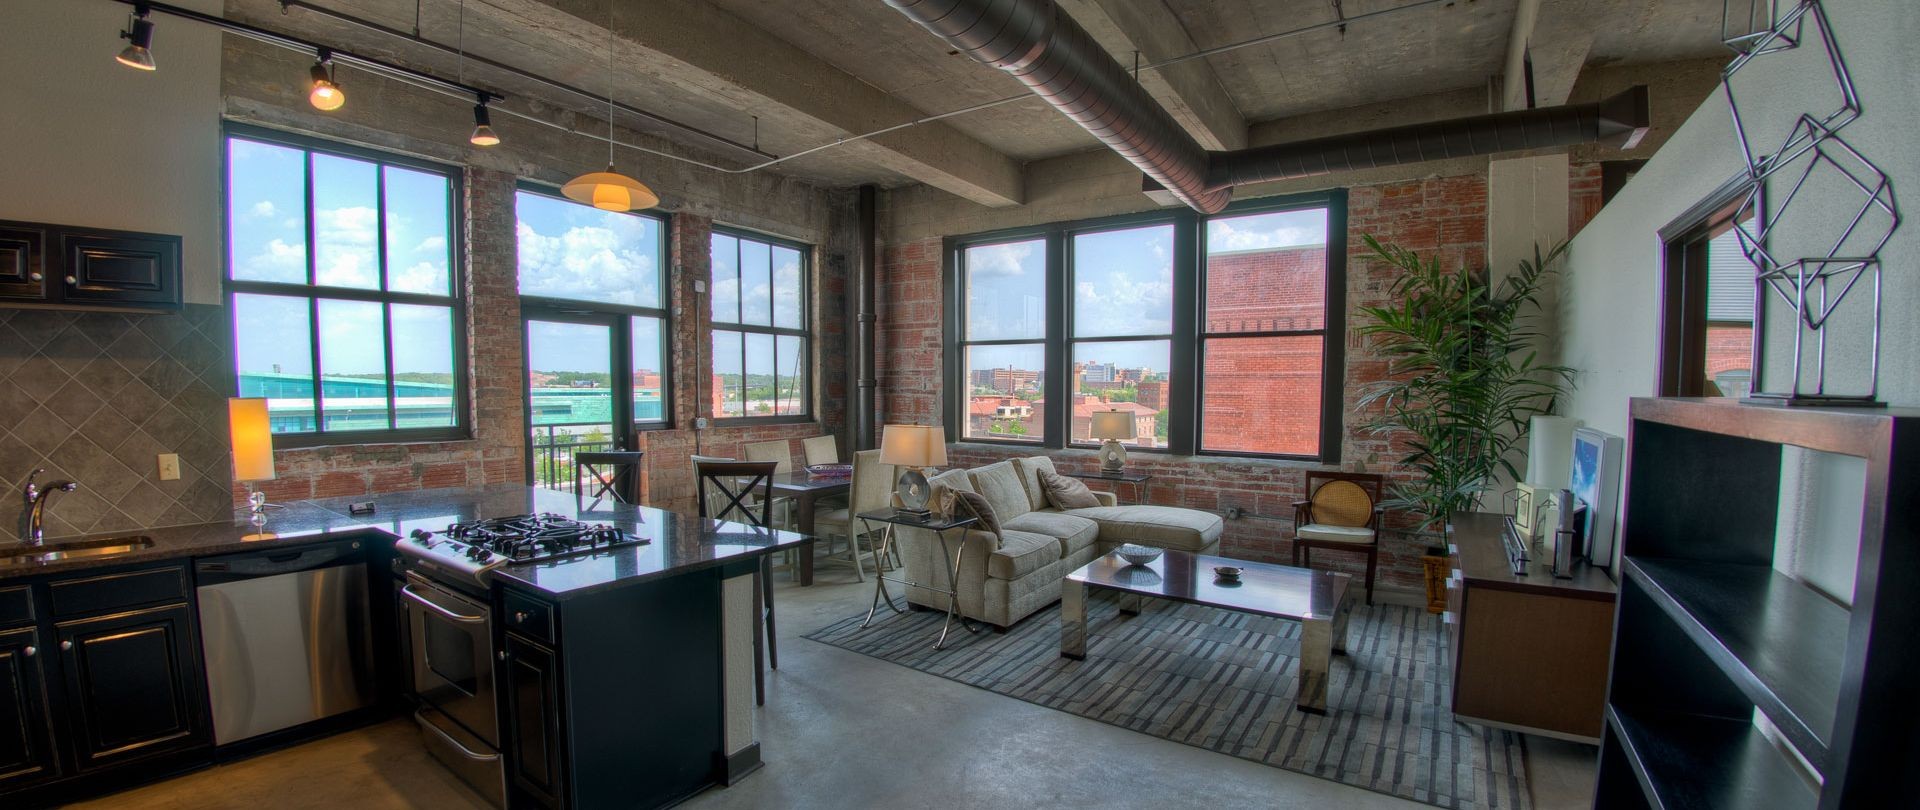 Campbell Lofts